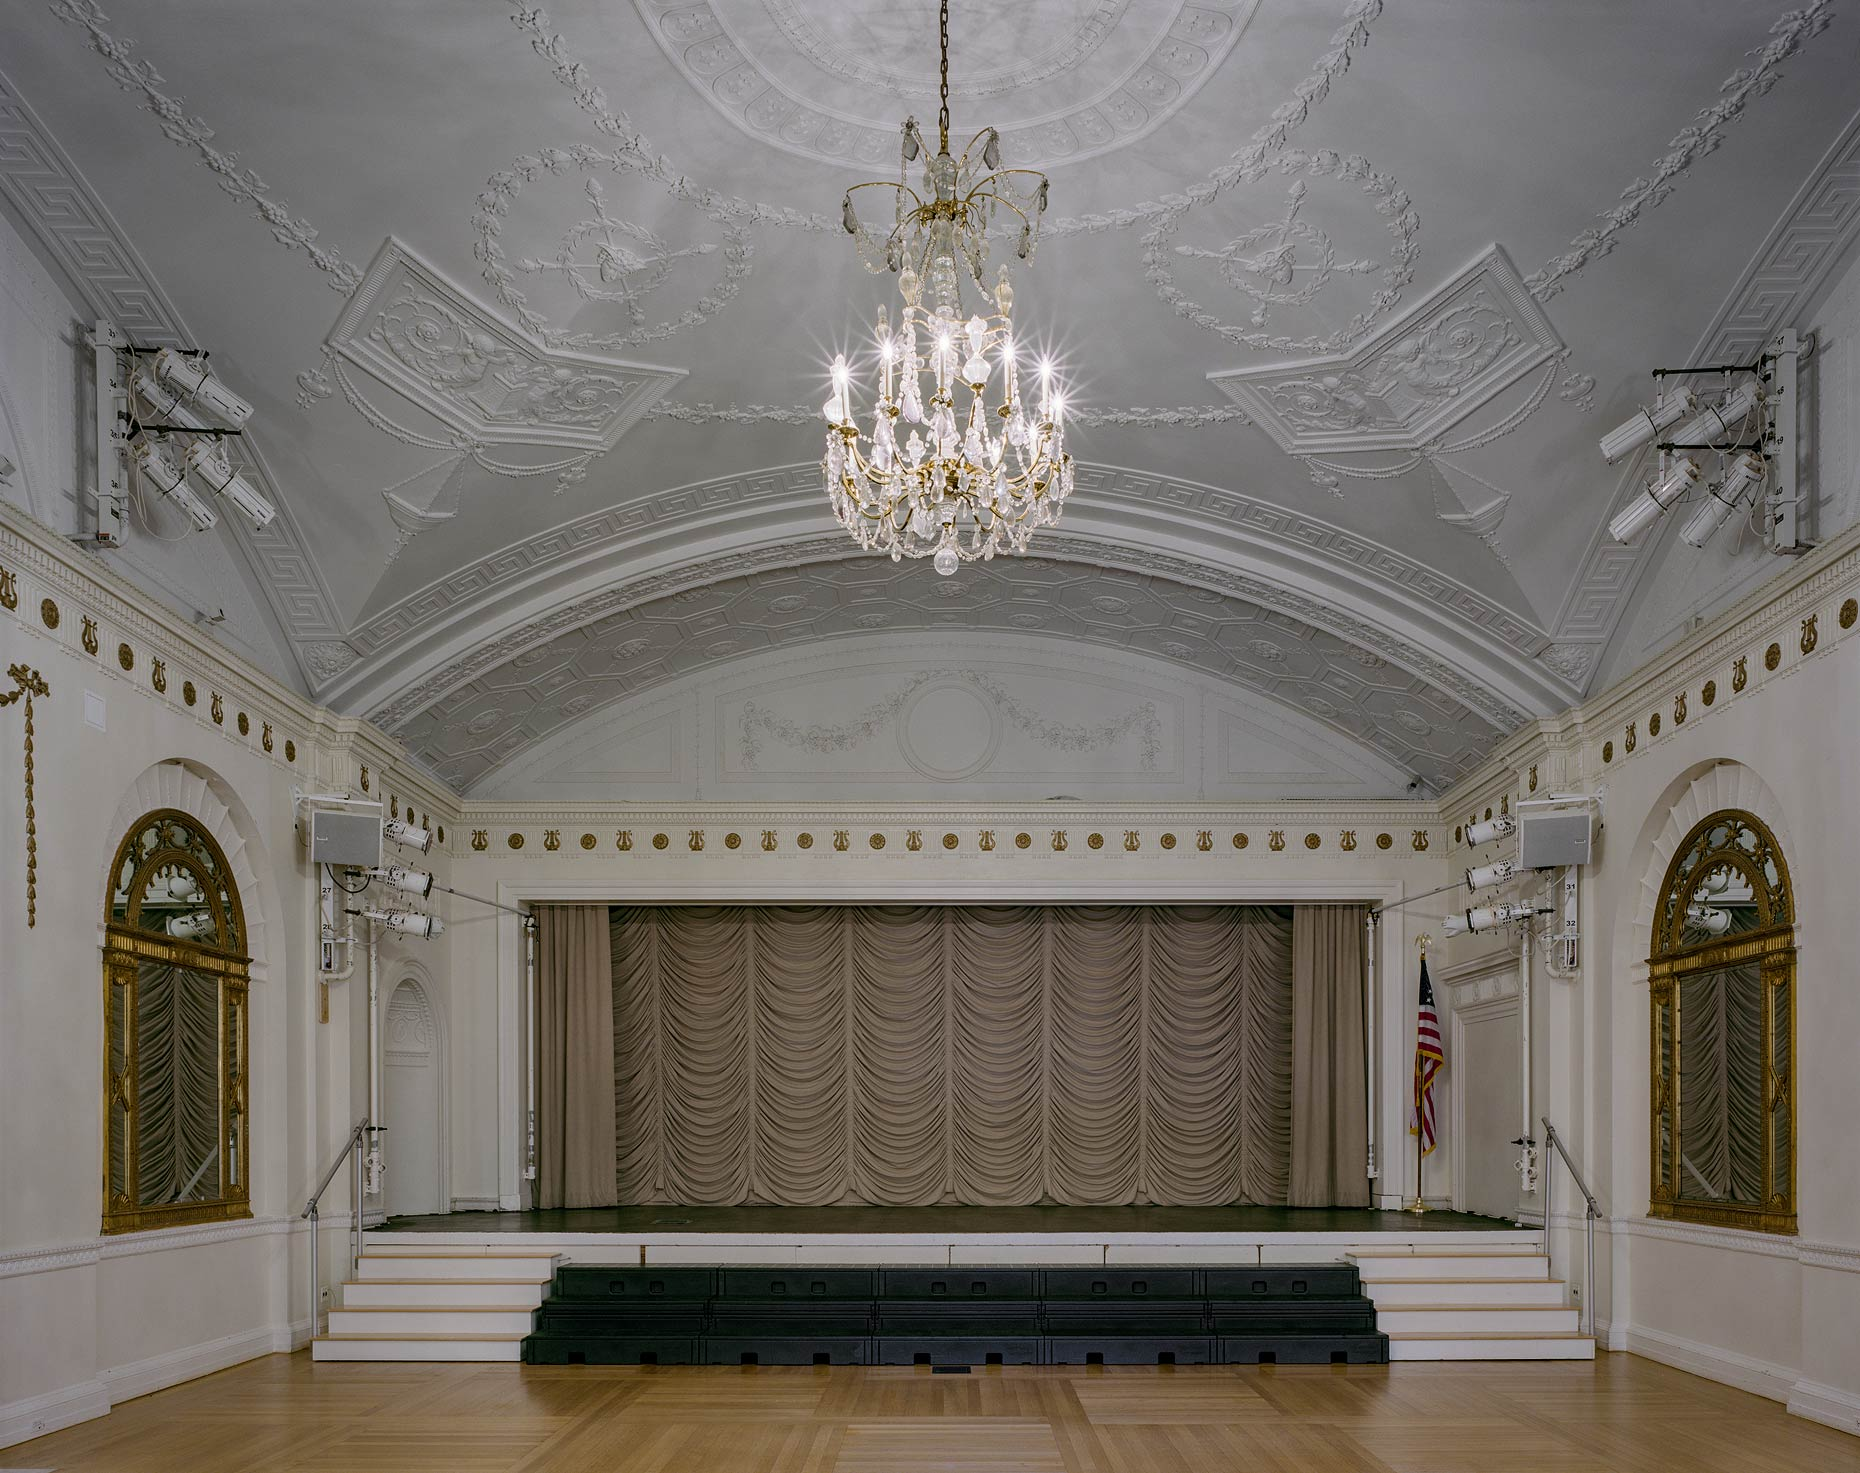 Auditorium, Convent of the Sacred Heart, 1 East 91st Street, New York City, 2015